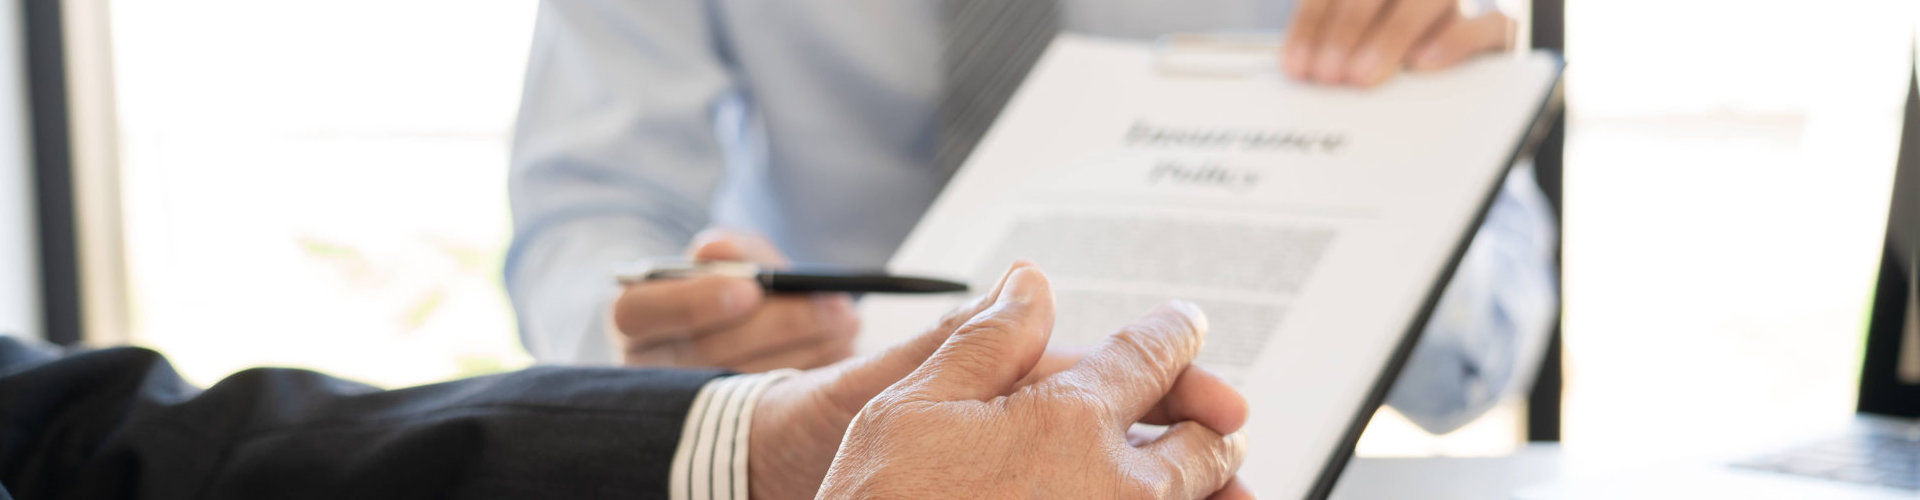 a man's hand and a contract paper